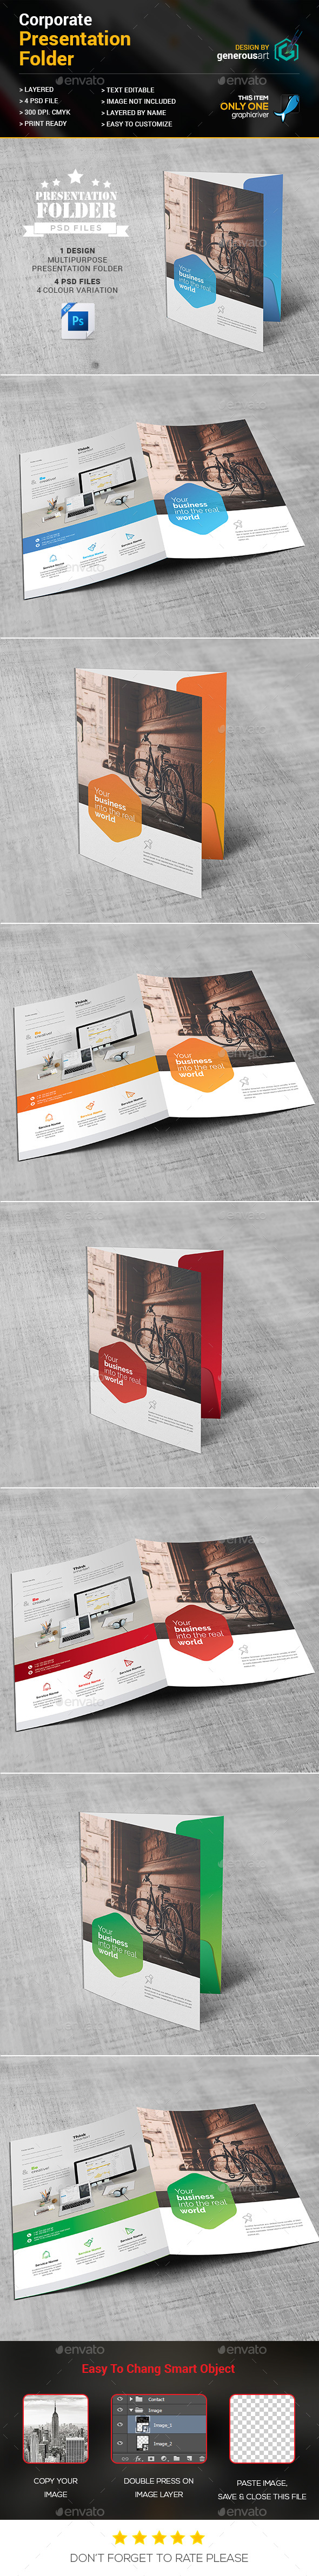 Corporate Presentation Folder - Stationery Print Templates